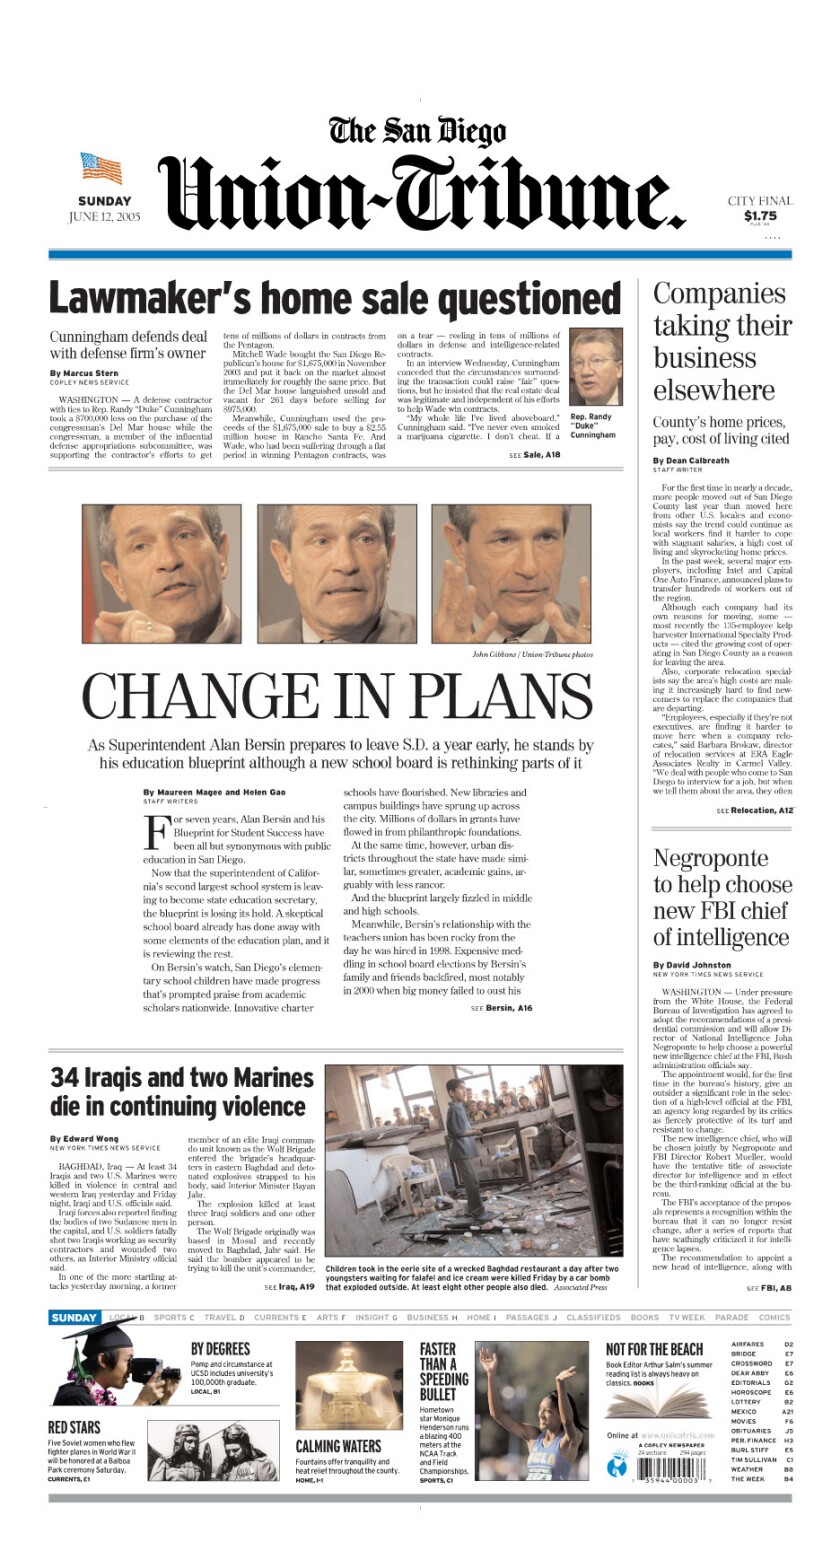 A-1 Front Page of The San Diego Union-Tribune for June 12, 2005 (6/12/2005)